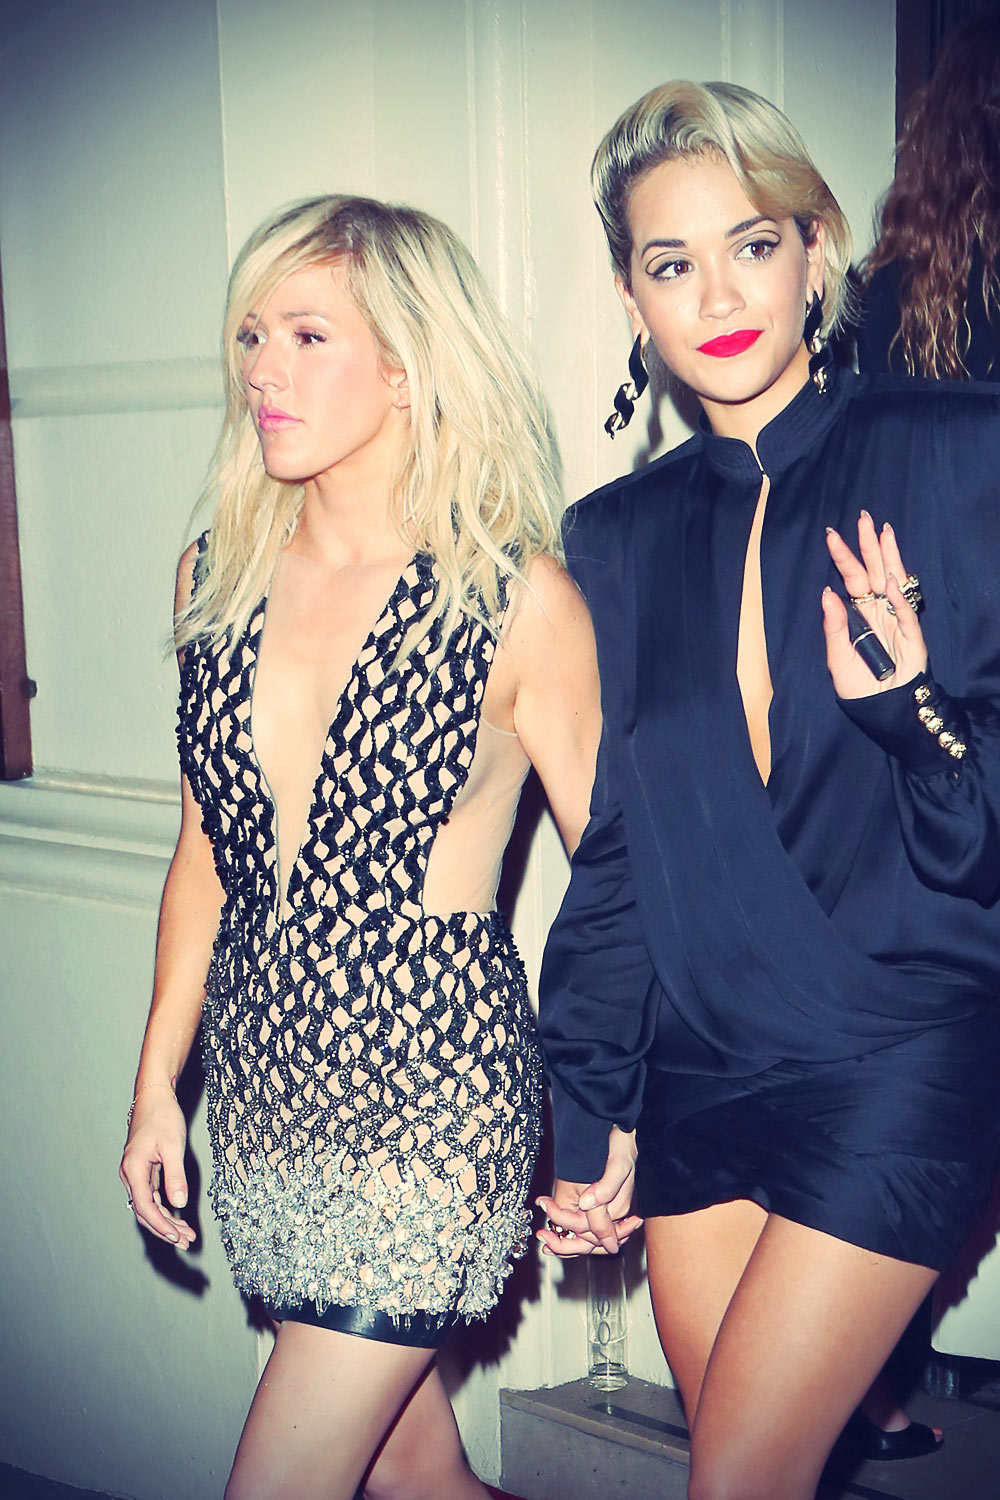 Ellie Goulding and Rita Ora leaving the GQ Men Of The Year Awards